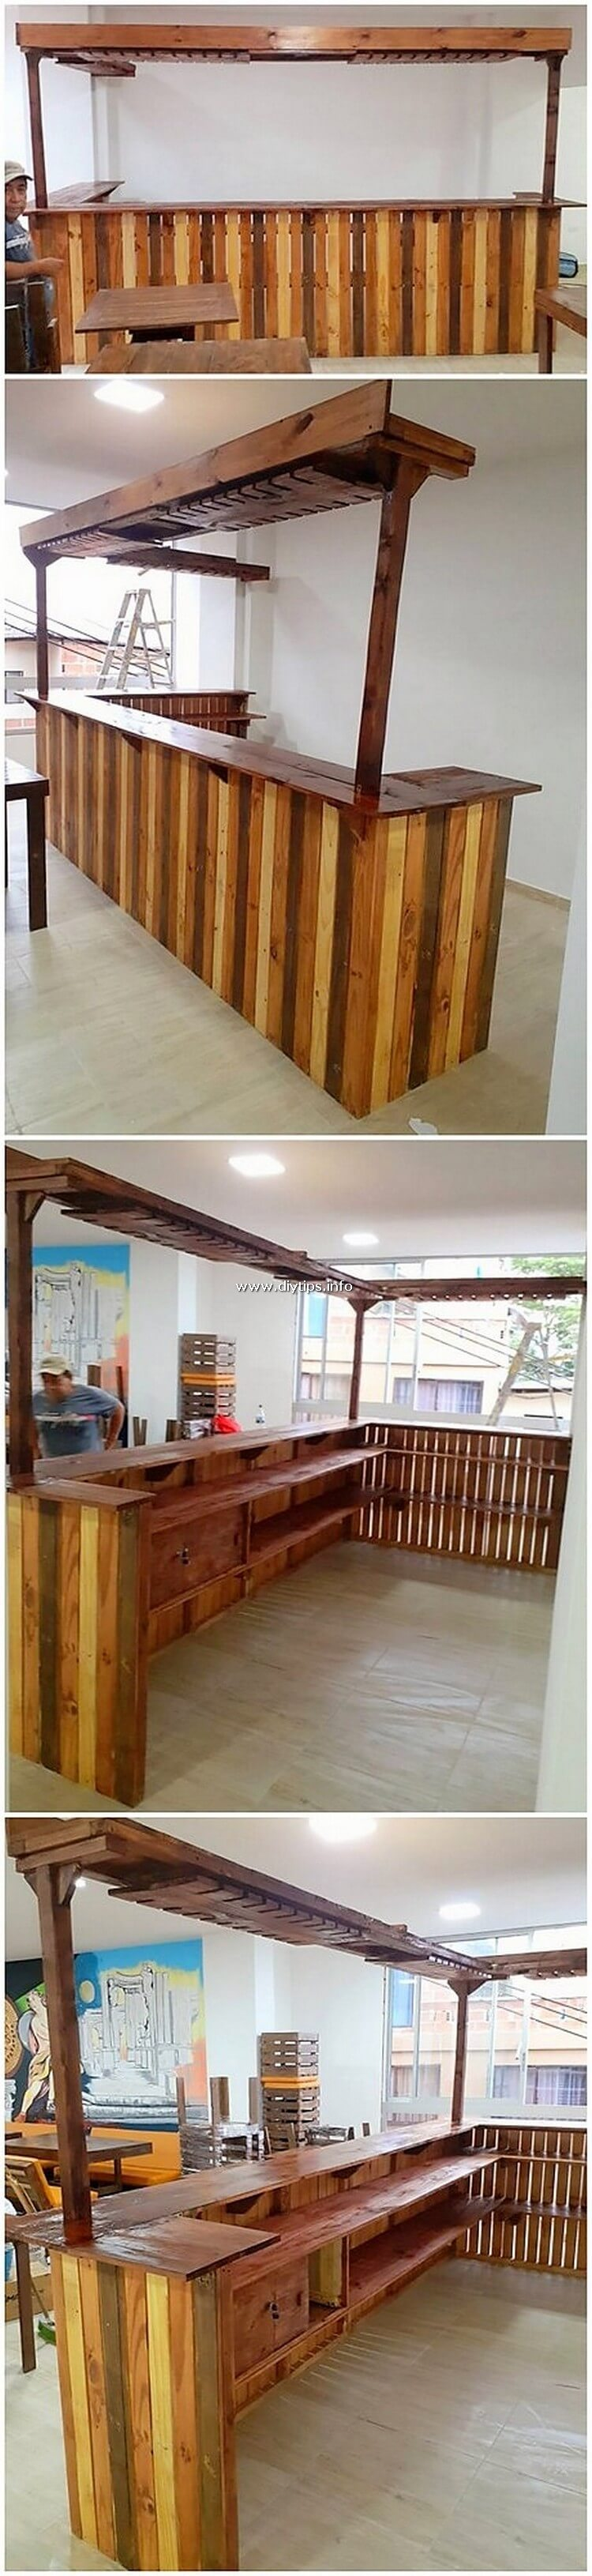 Pallet Wood Counter Table